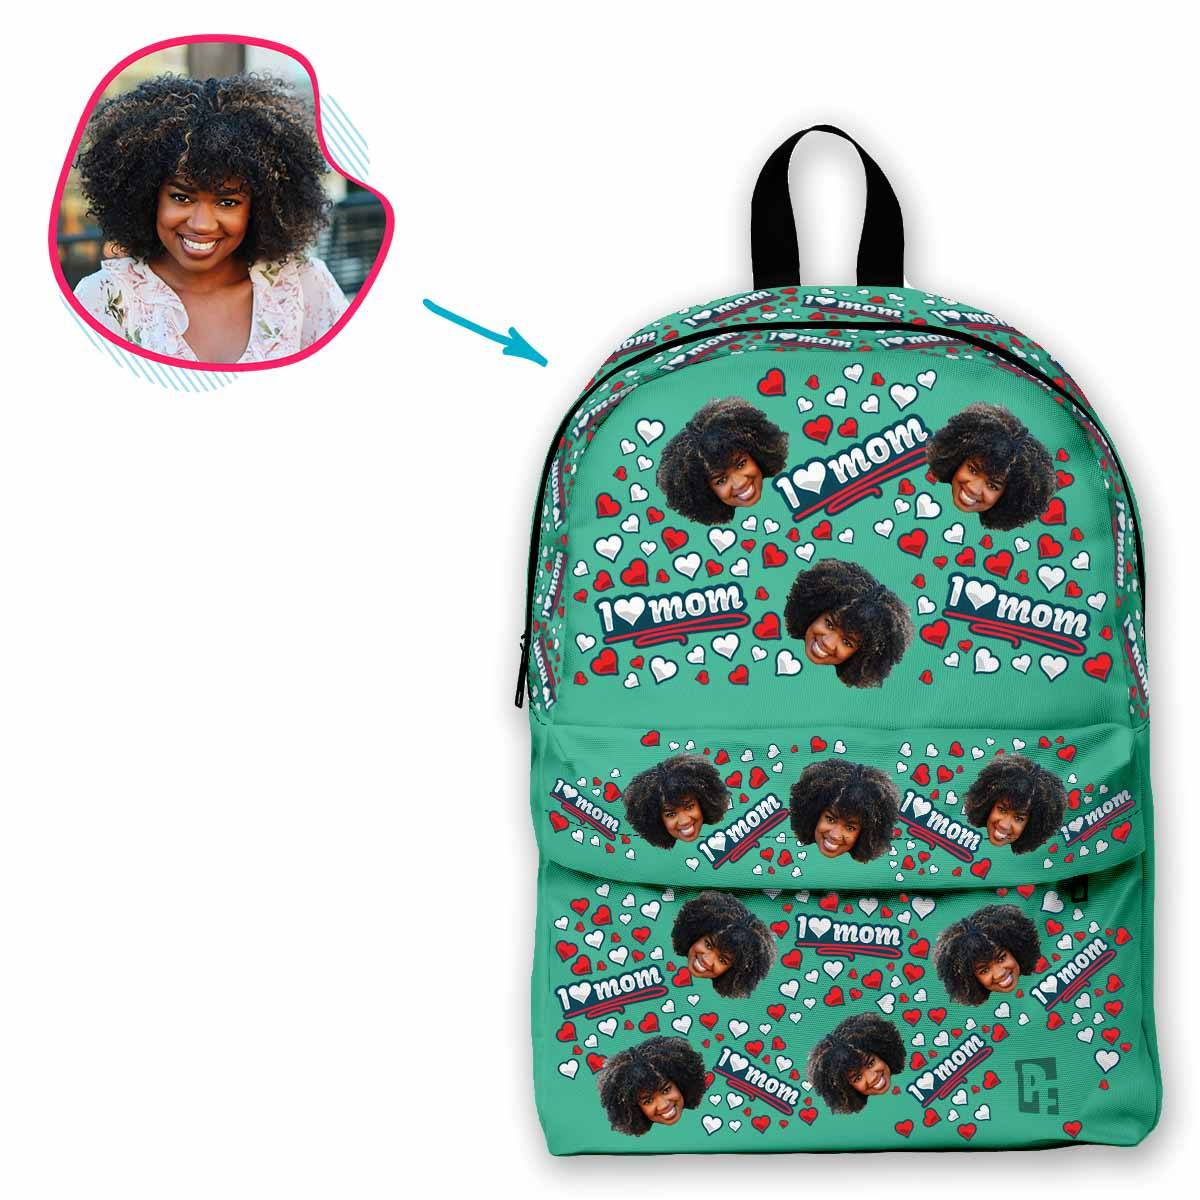 mint Love Mom classic backpack personalized with photo of face printed on it